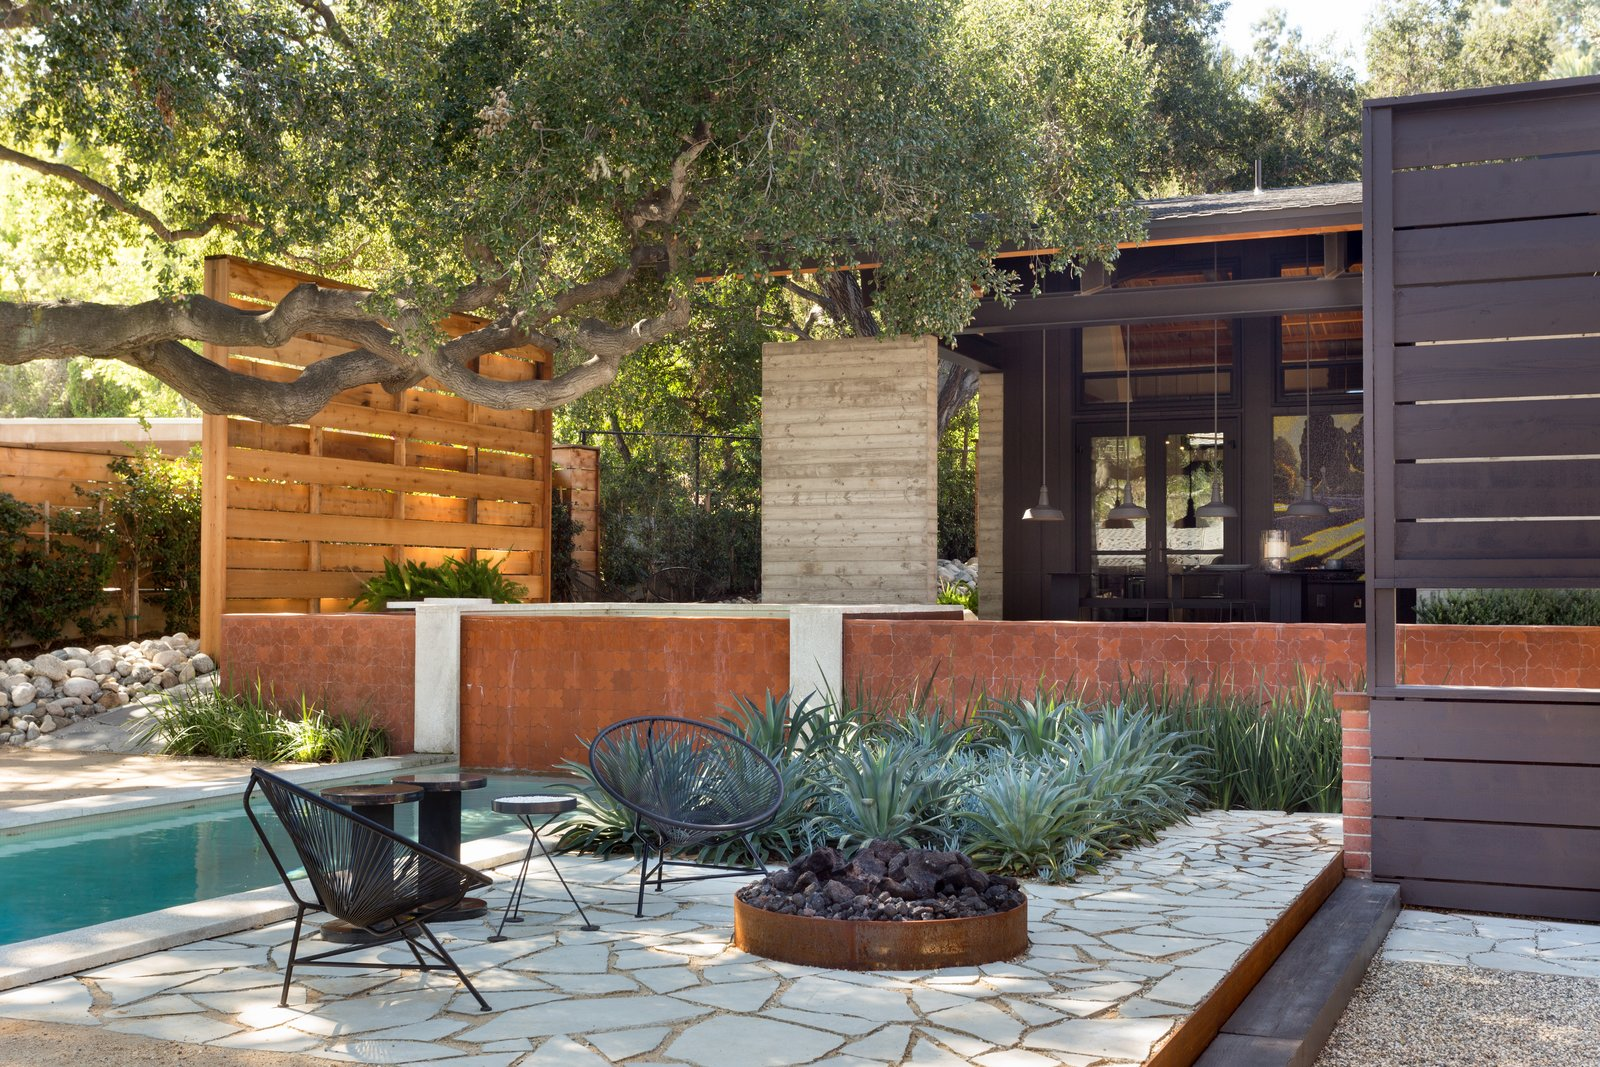 The outdoor space includes a fire pit.